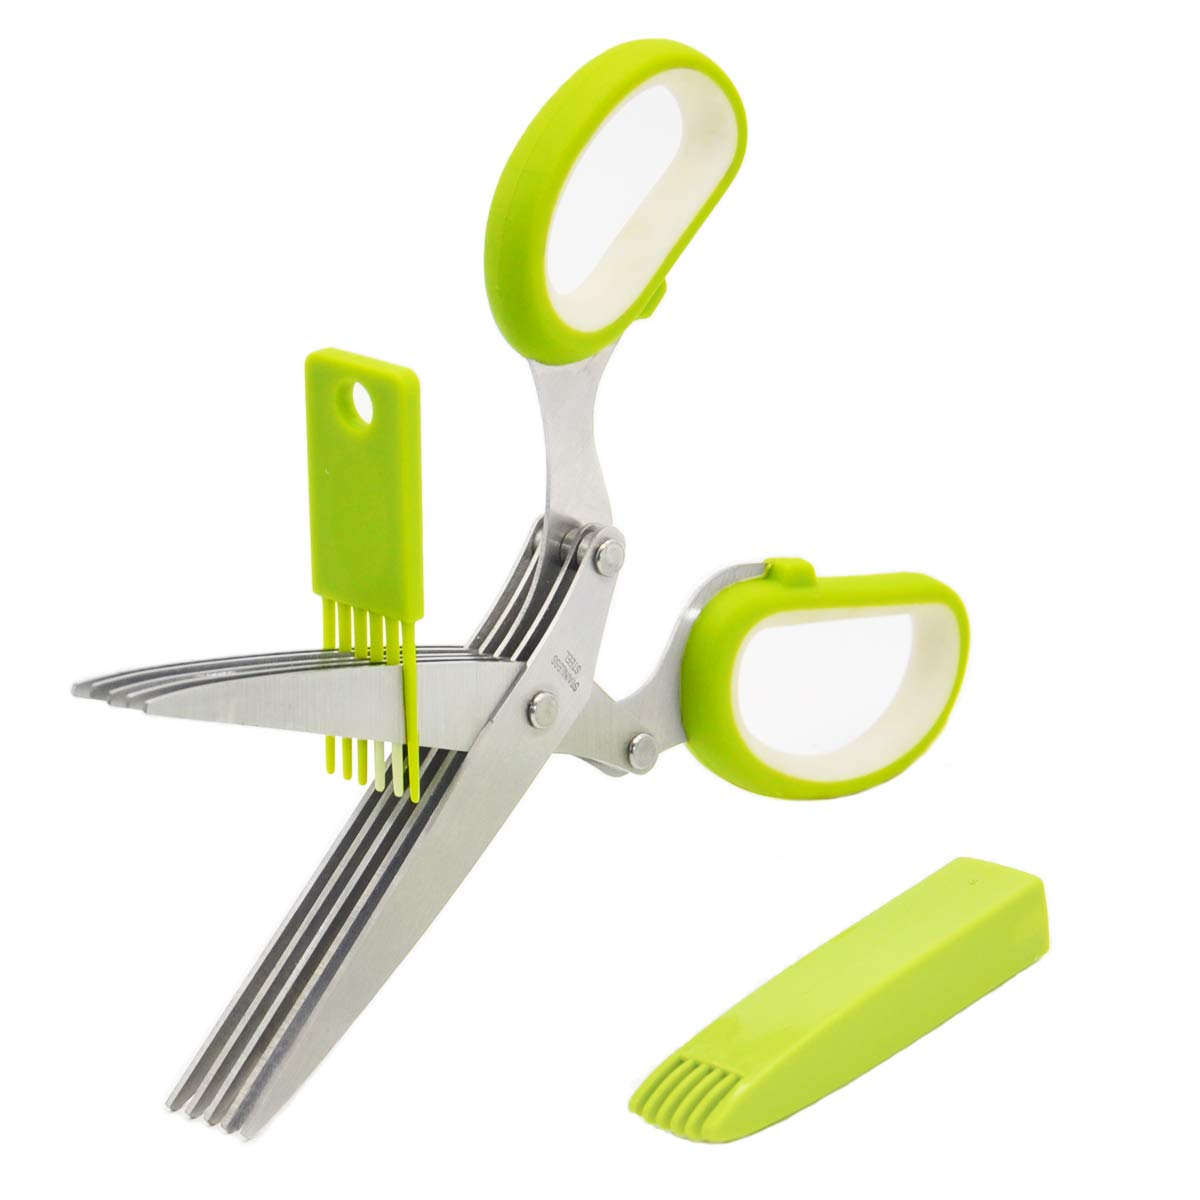 Herb Scissors Set with 5 Multi Stainless Steel Blades, Safe Cover and Cleaning Comb, Multipurpose Kitchen Chopping Shear, Mincer, Sharp Dishwasher Safe Kitchen Gadget, Culinary Cutter Chopper Jufoyo